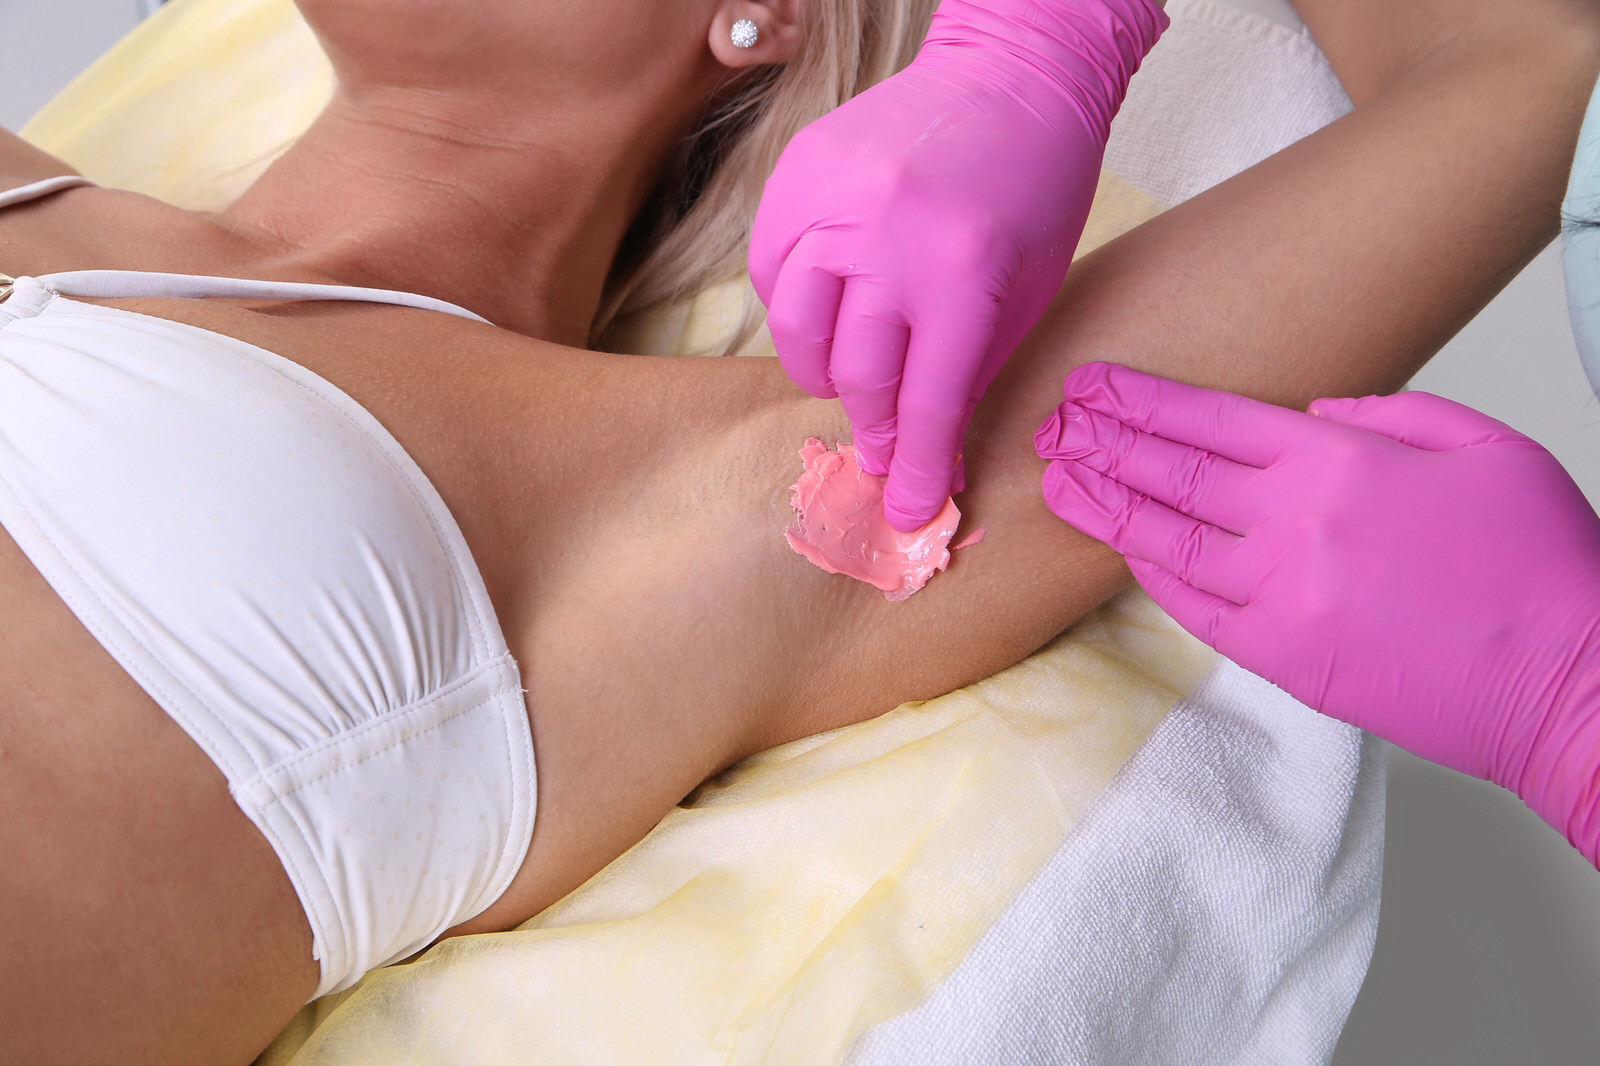 A woman gets her underarms waxed